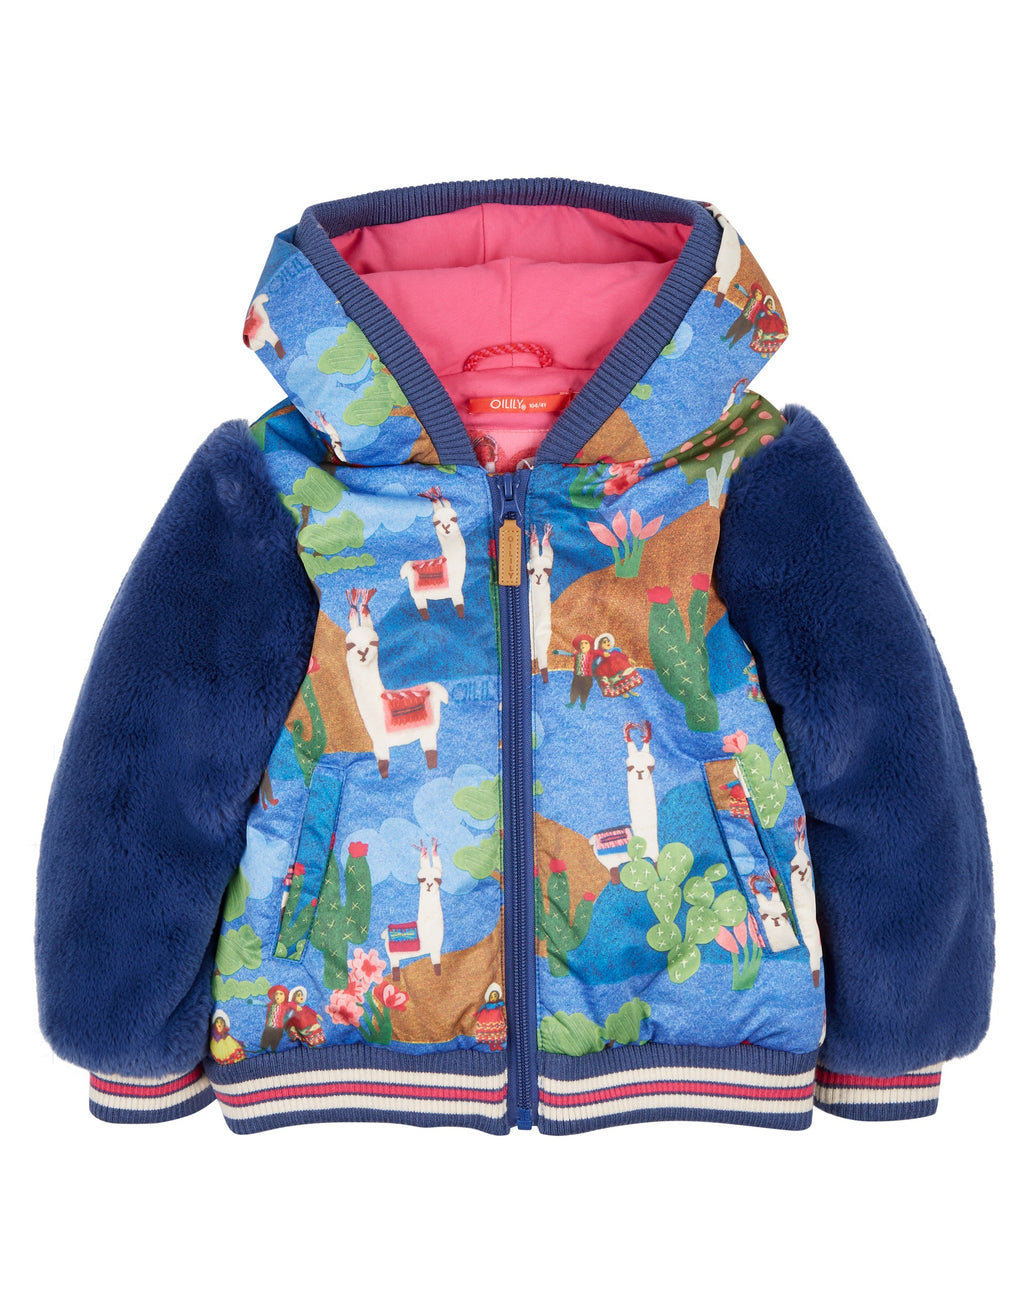 Oilily Winter Chabala Jack Lama Blue Furry Jacket - Scarlett's Bowtique